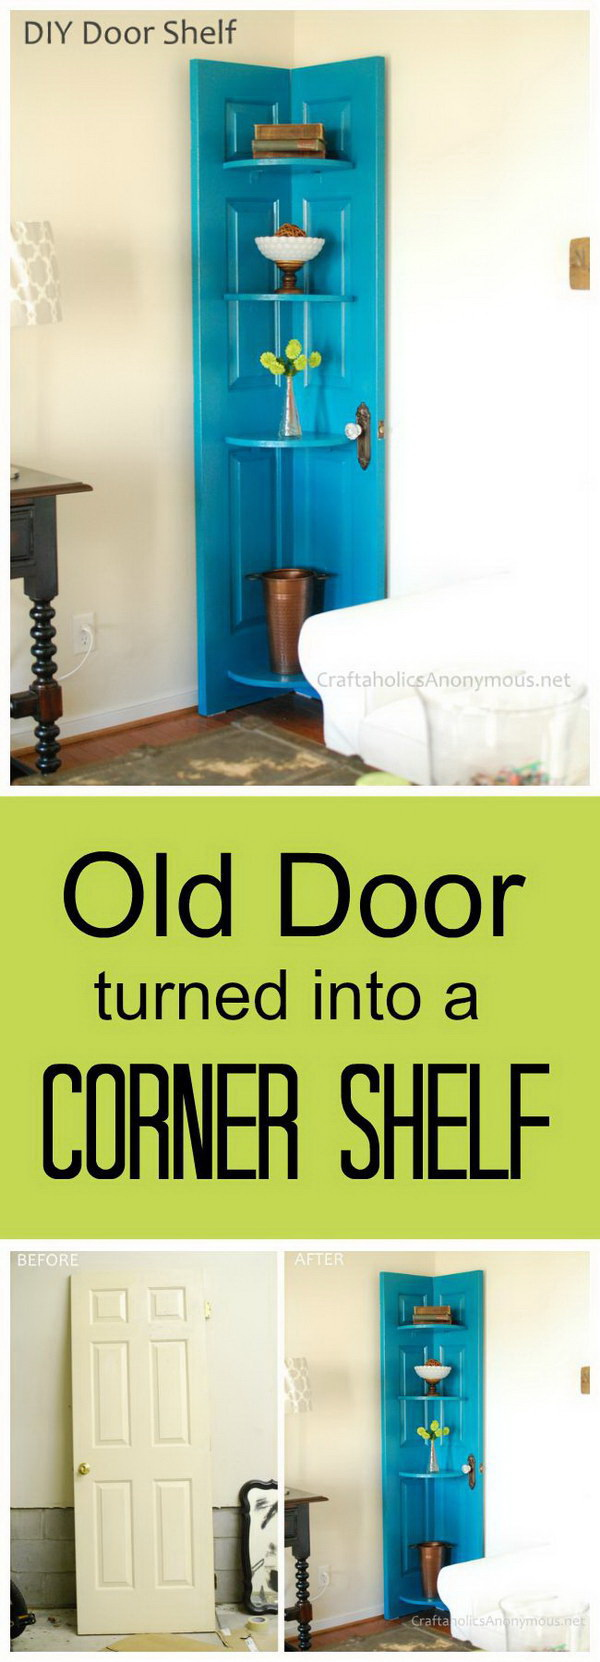 DIY Corner Door Shelf. Repurpose an old door into a stylish shelf in an unused corner of a kitchen, living area or family room.